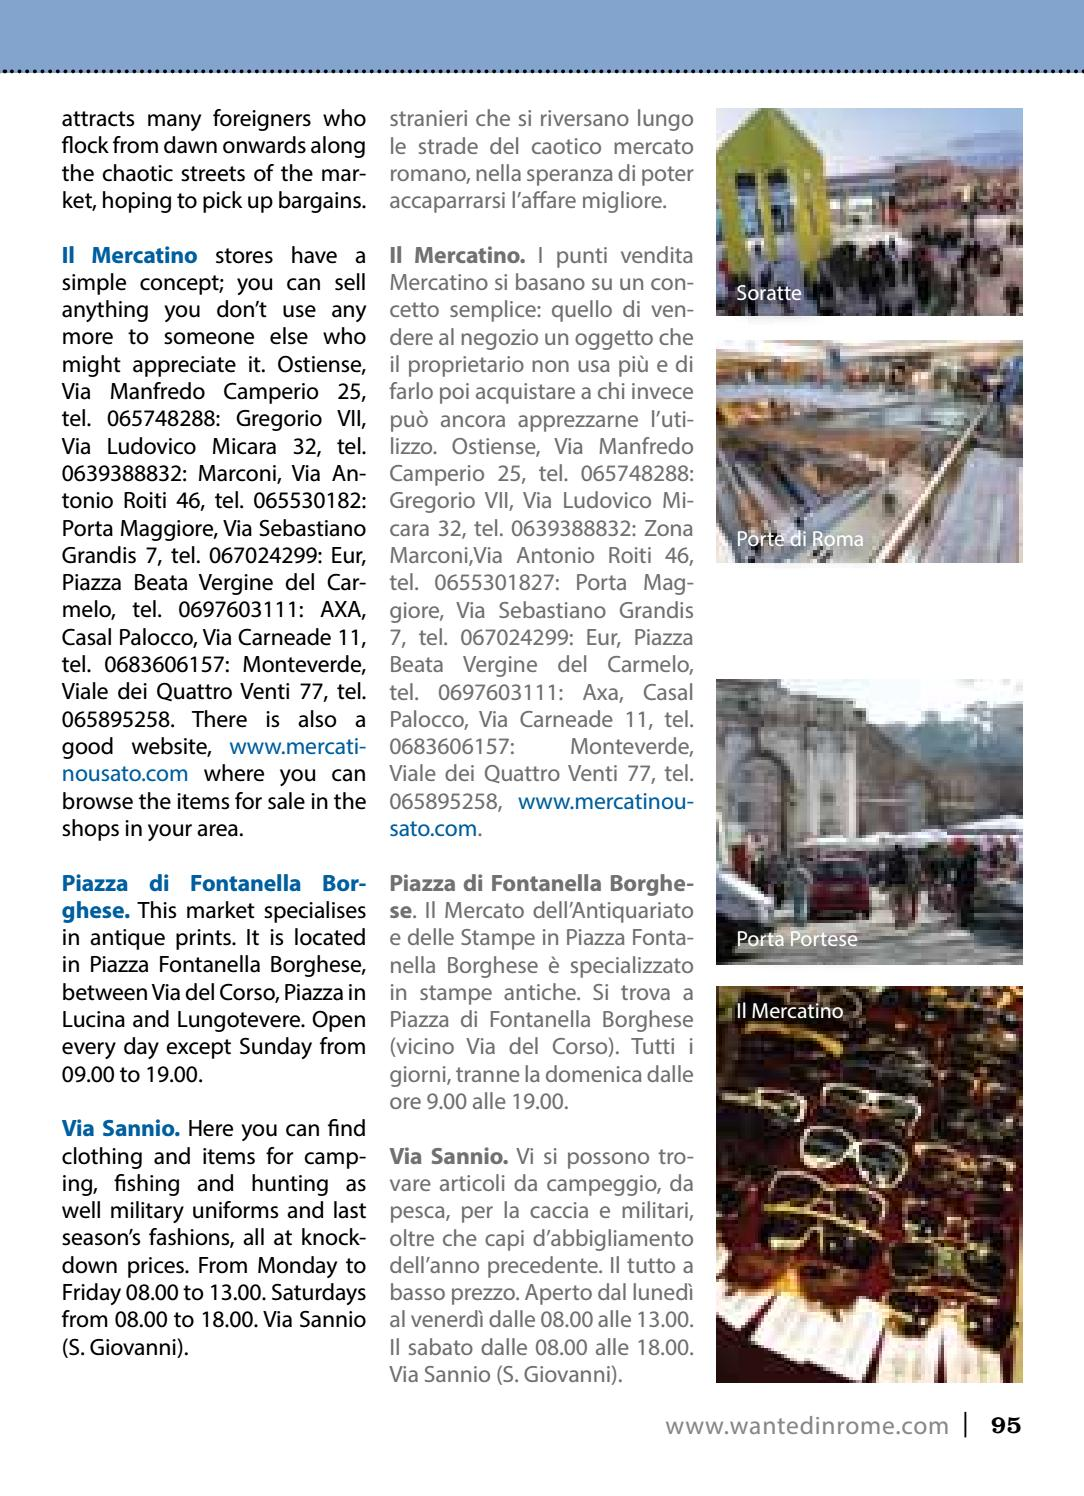 The expat guide to rome 2017 by wanted in rome issuu - Il mercatino roma porta maggiore ...